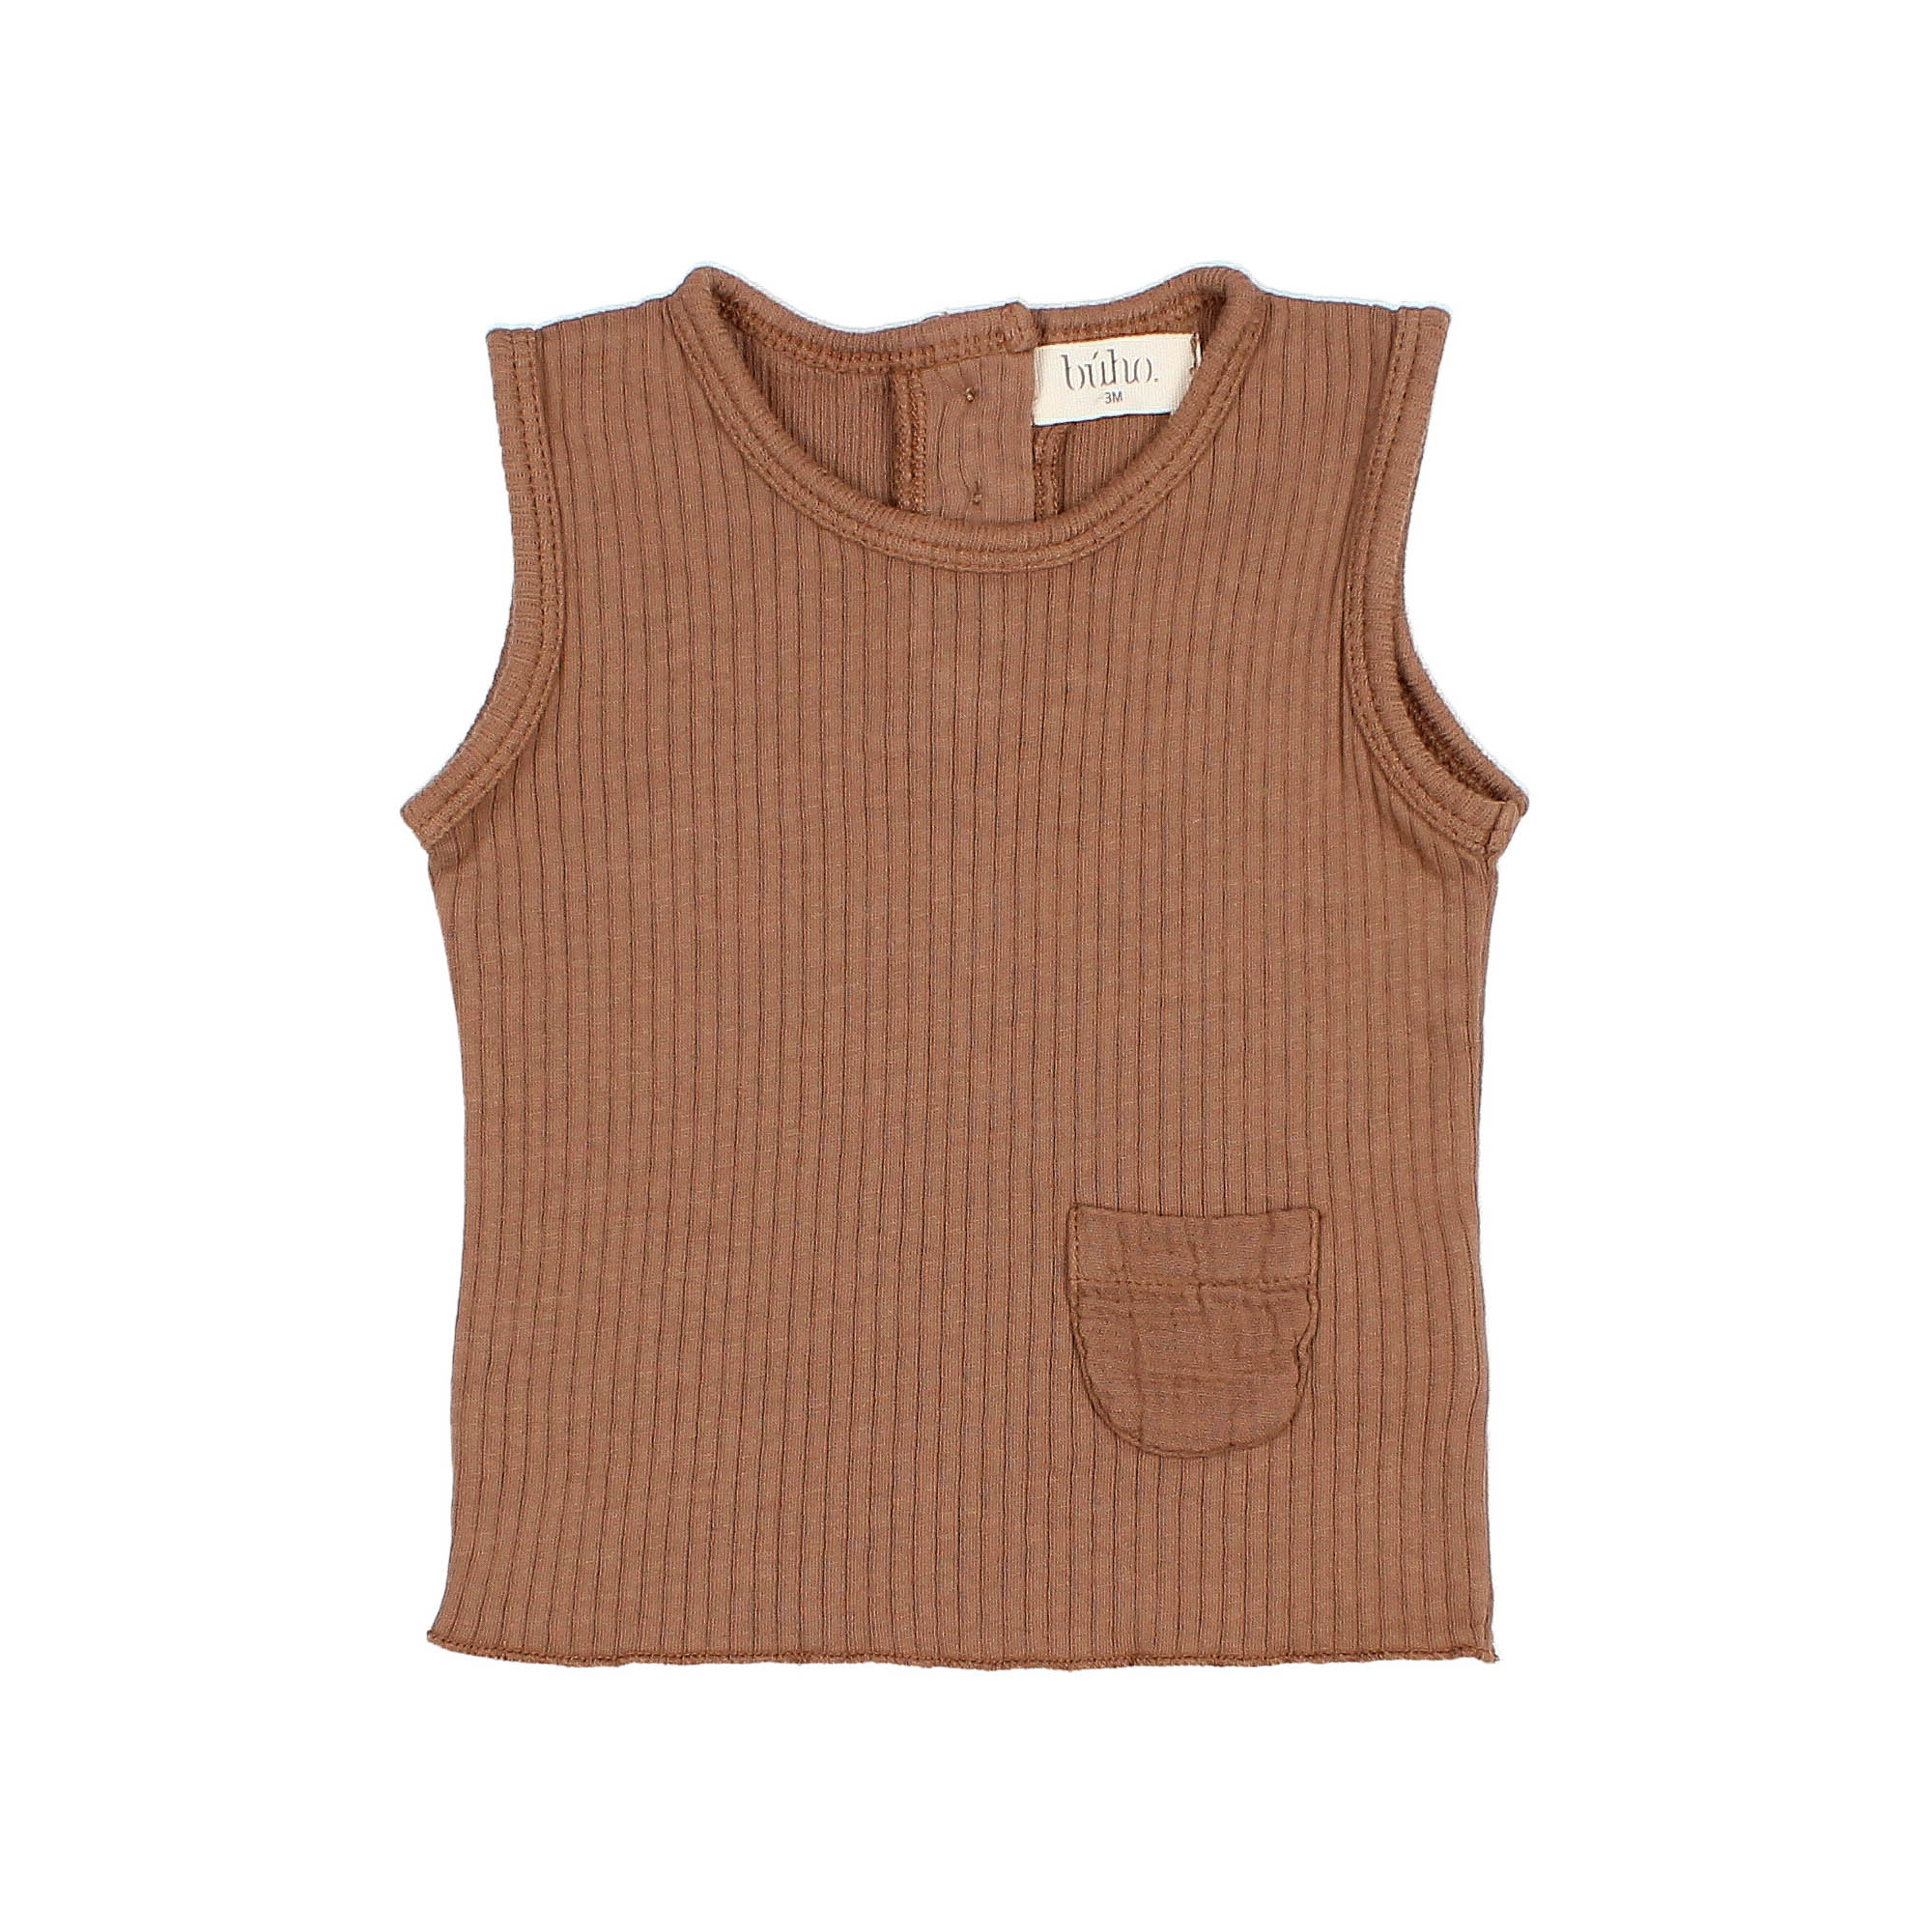 Sidney Tank Top - Cocoa